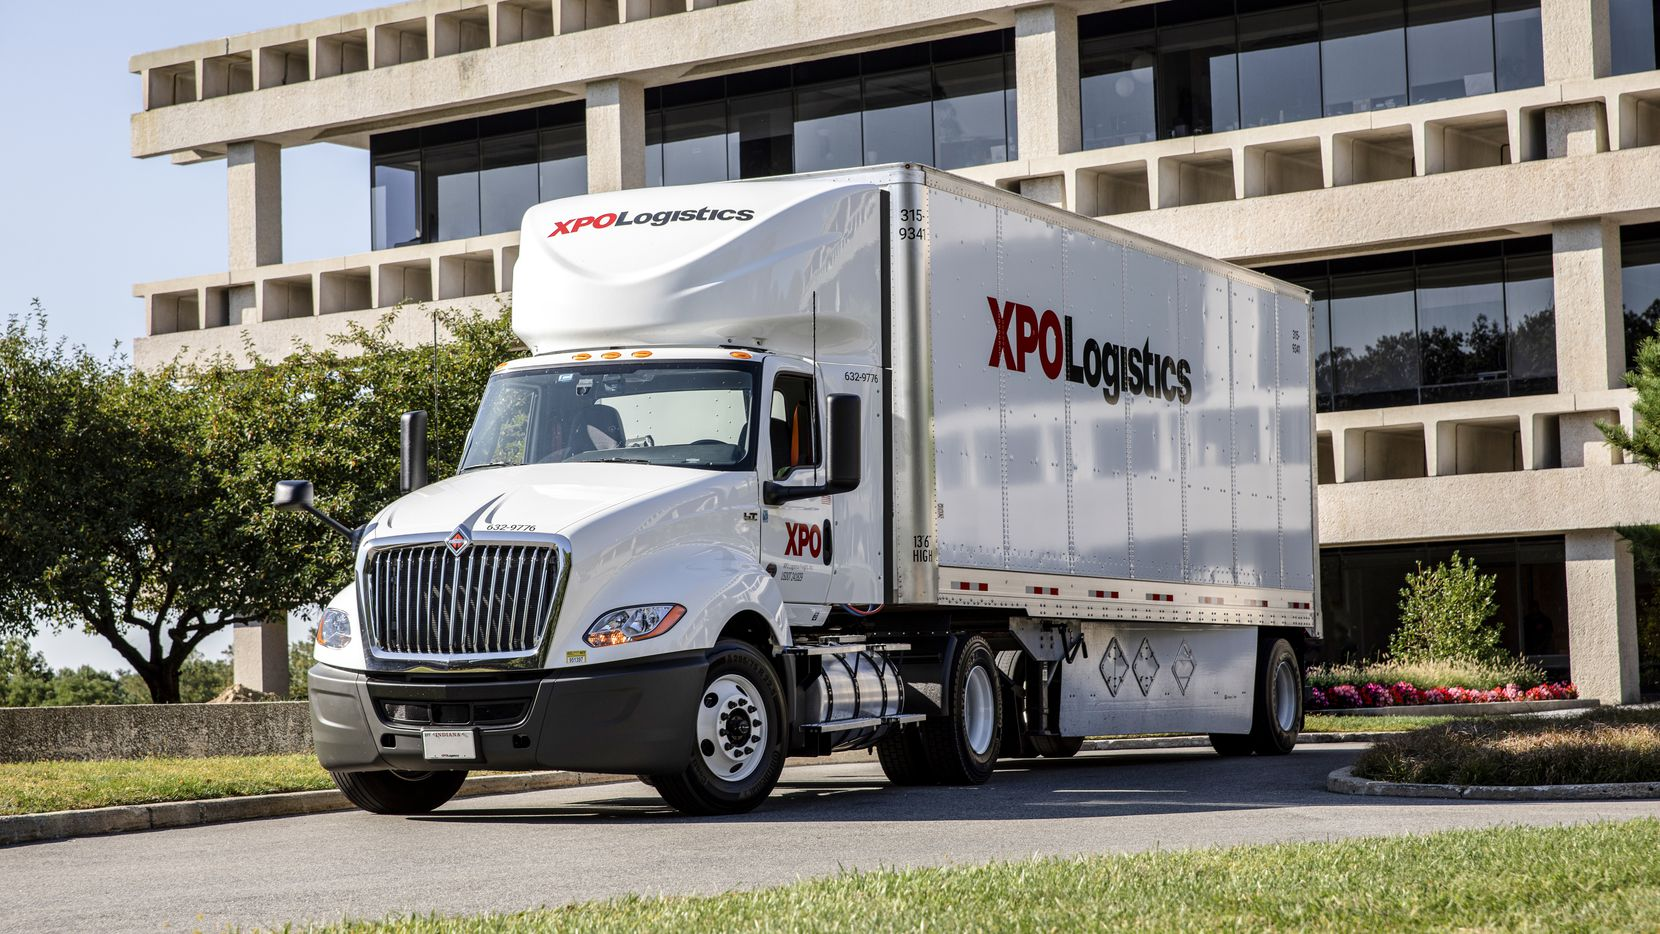 Transportation conglomerate XPO Logistics operates 26 supply chain, last-mile locations and terminals in Dallas-Fort Worth.